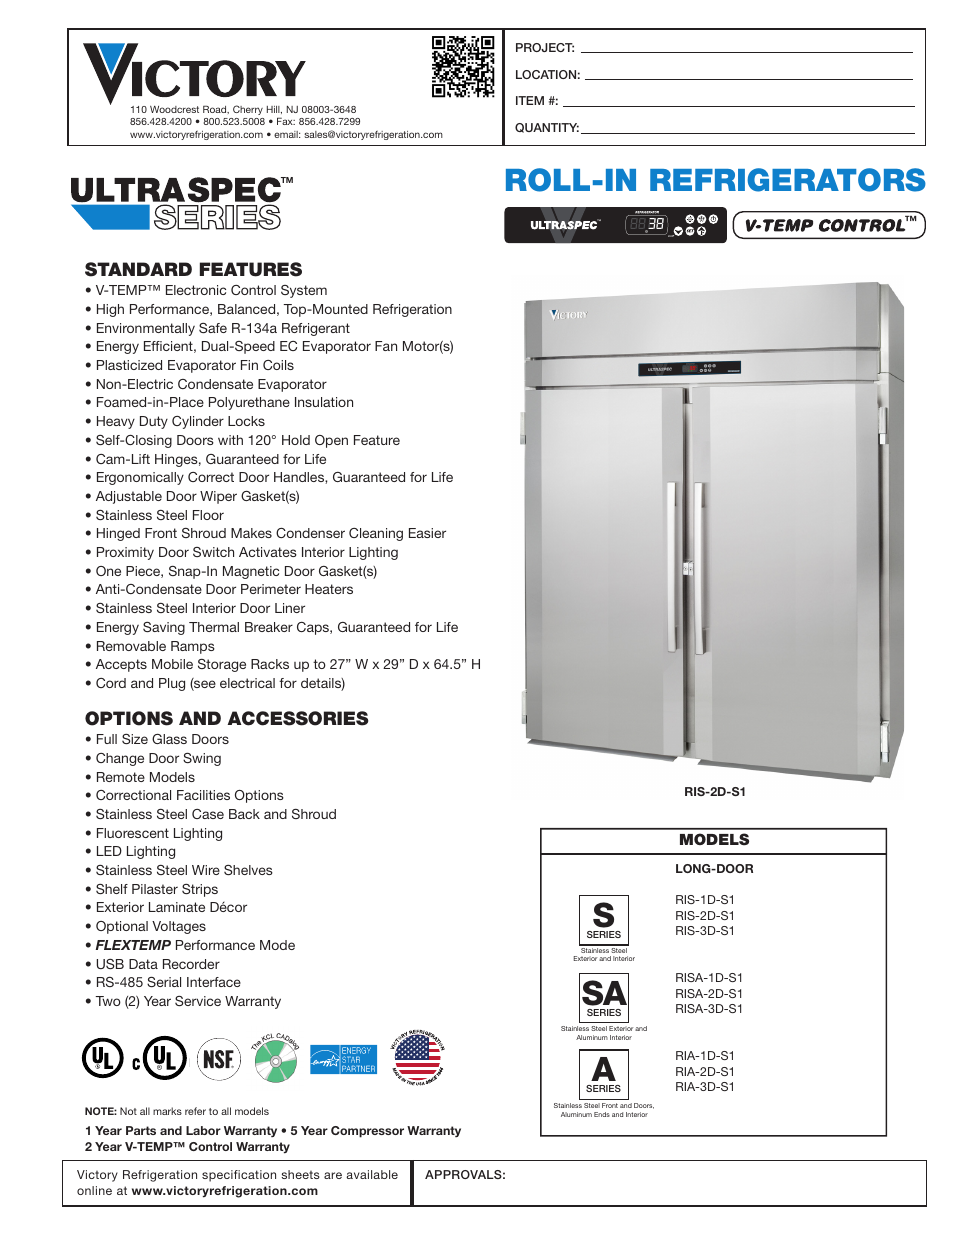 Victory Refrigeration Ria 2d S7 User Manual 2 Pages